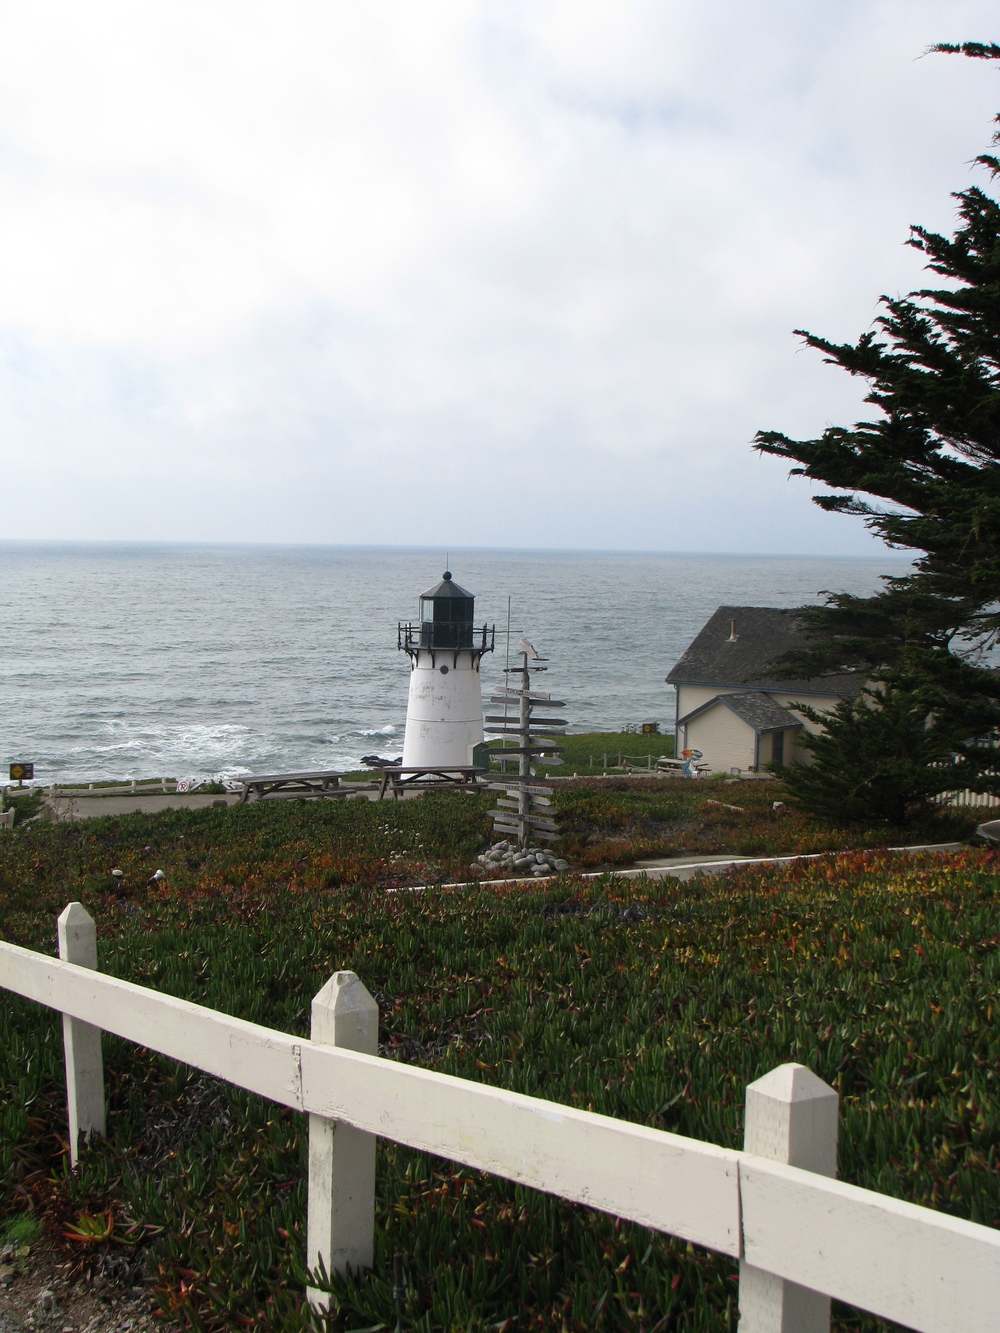 Lighthouse- Montara, CA